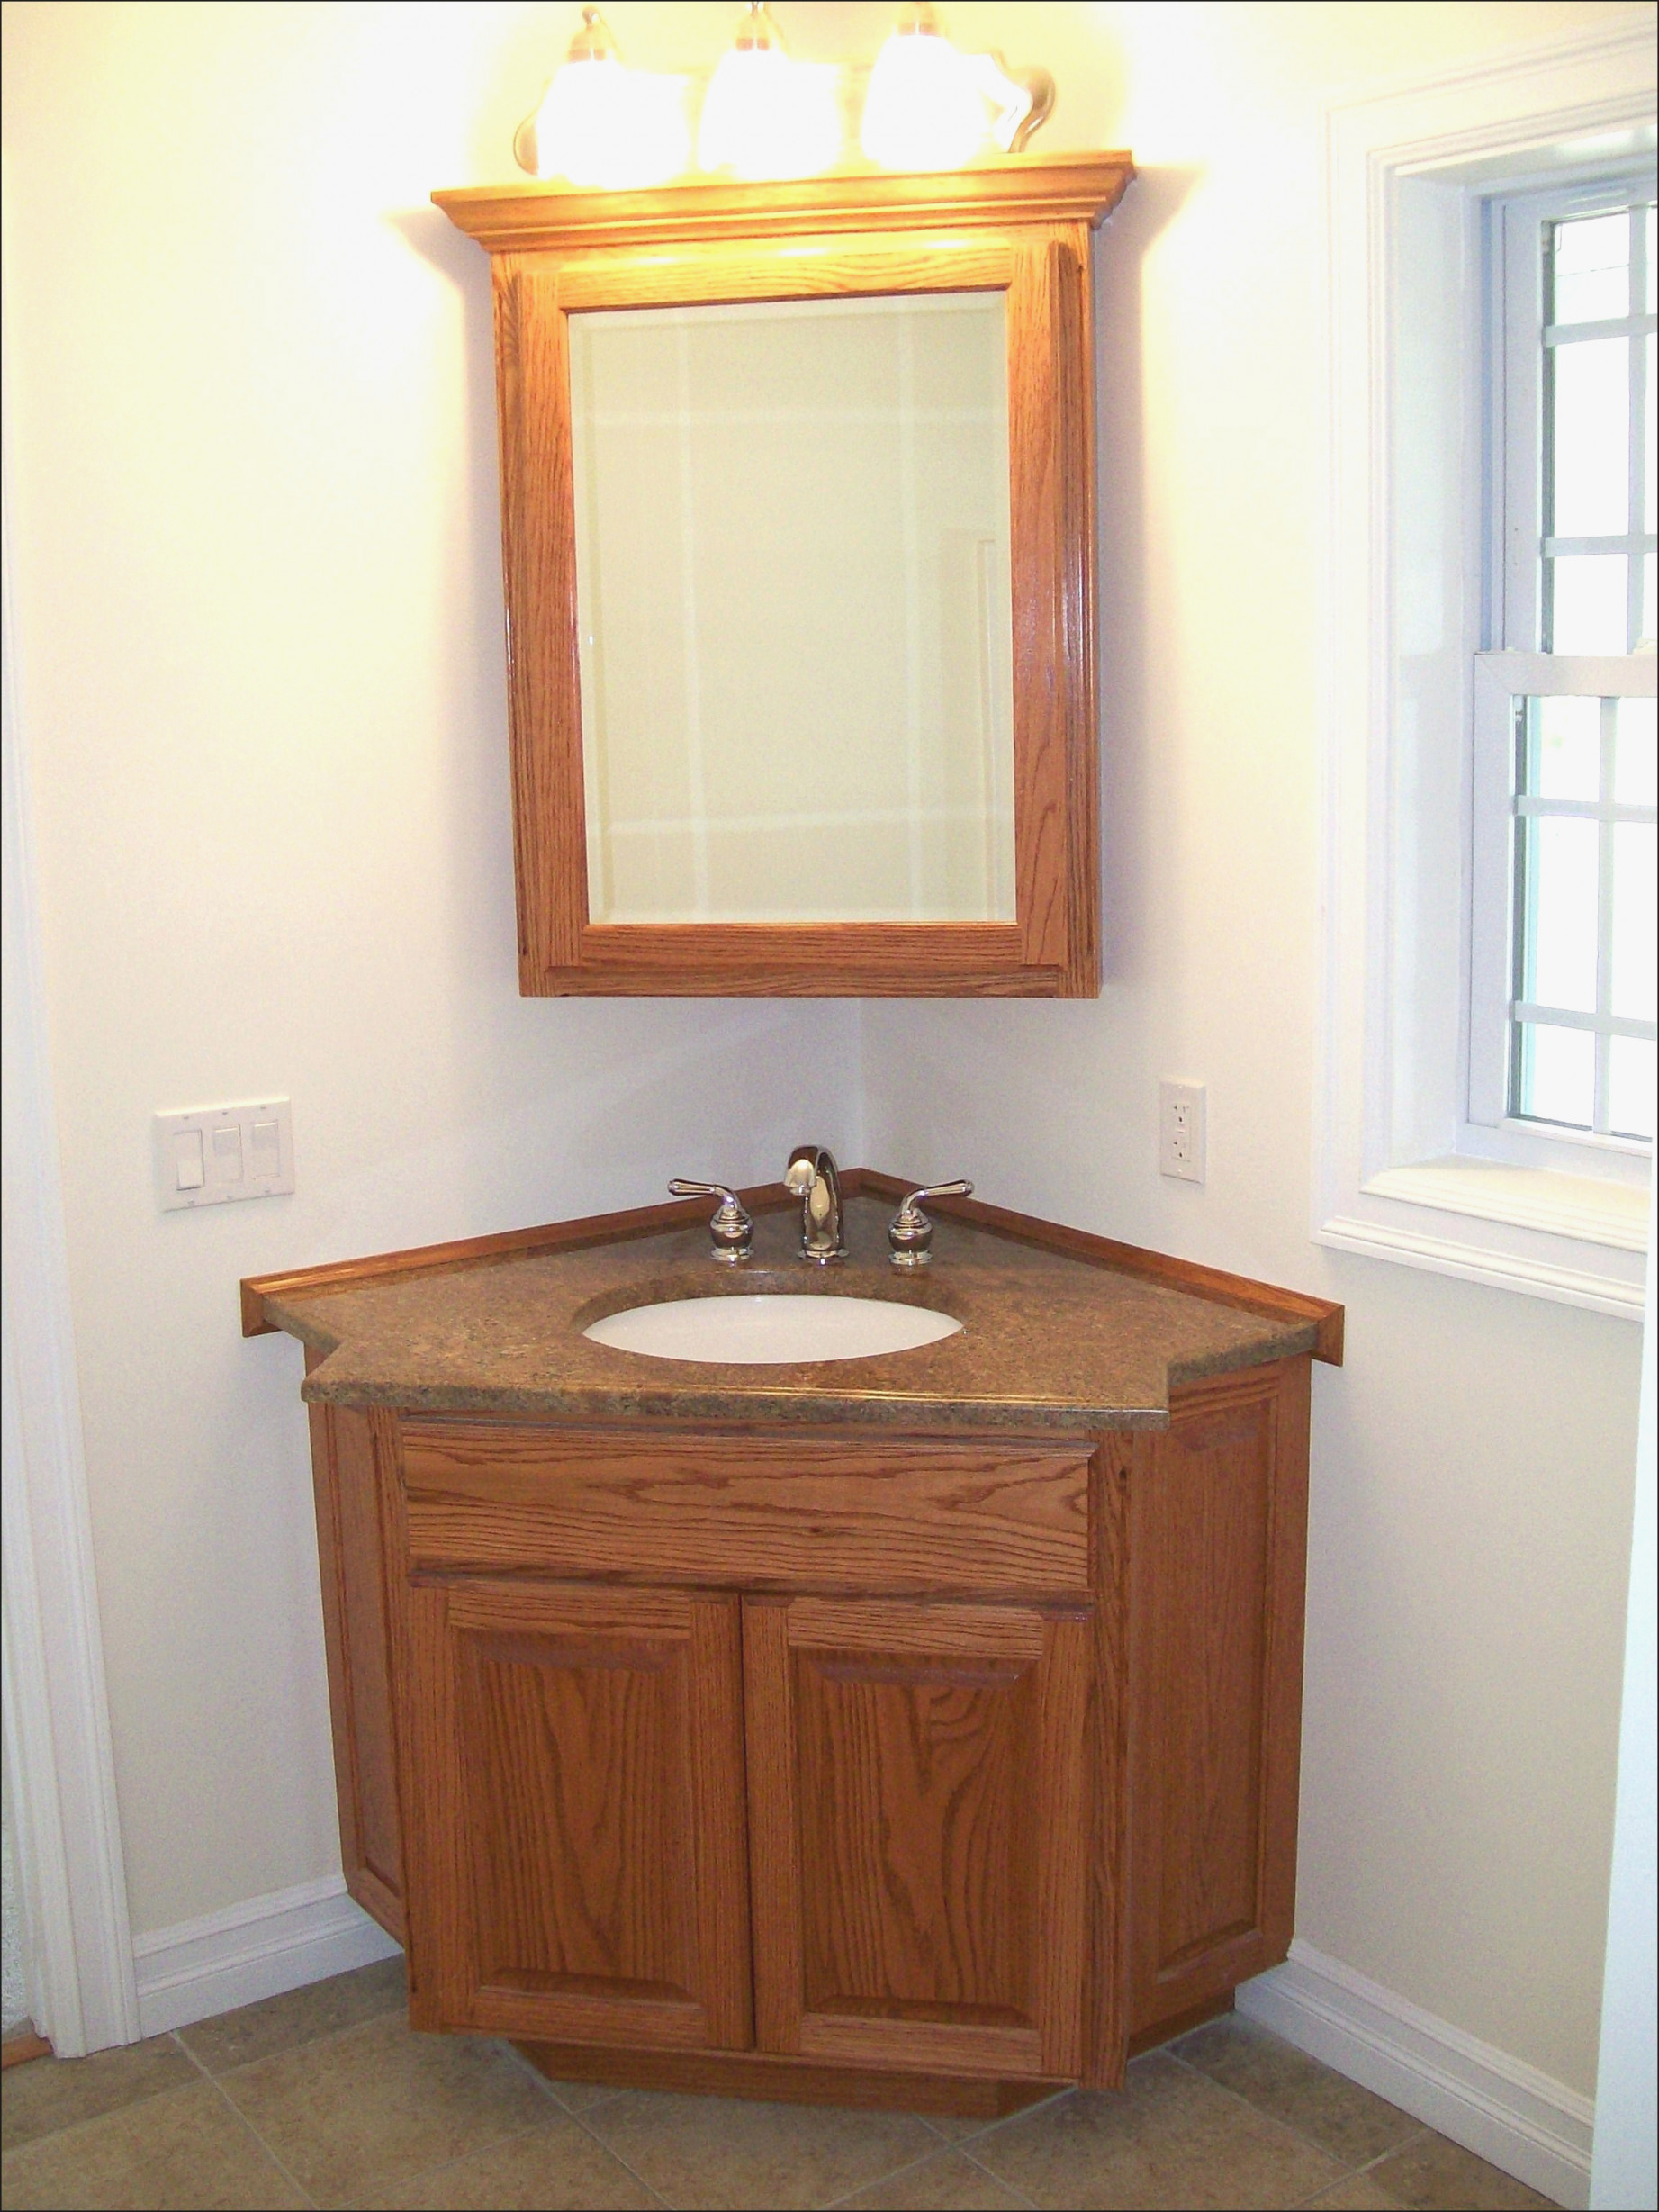 bathroom cabinets diy best of beautiful corner bathroom sink and cabinet of bathroom cabinets diy